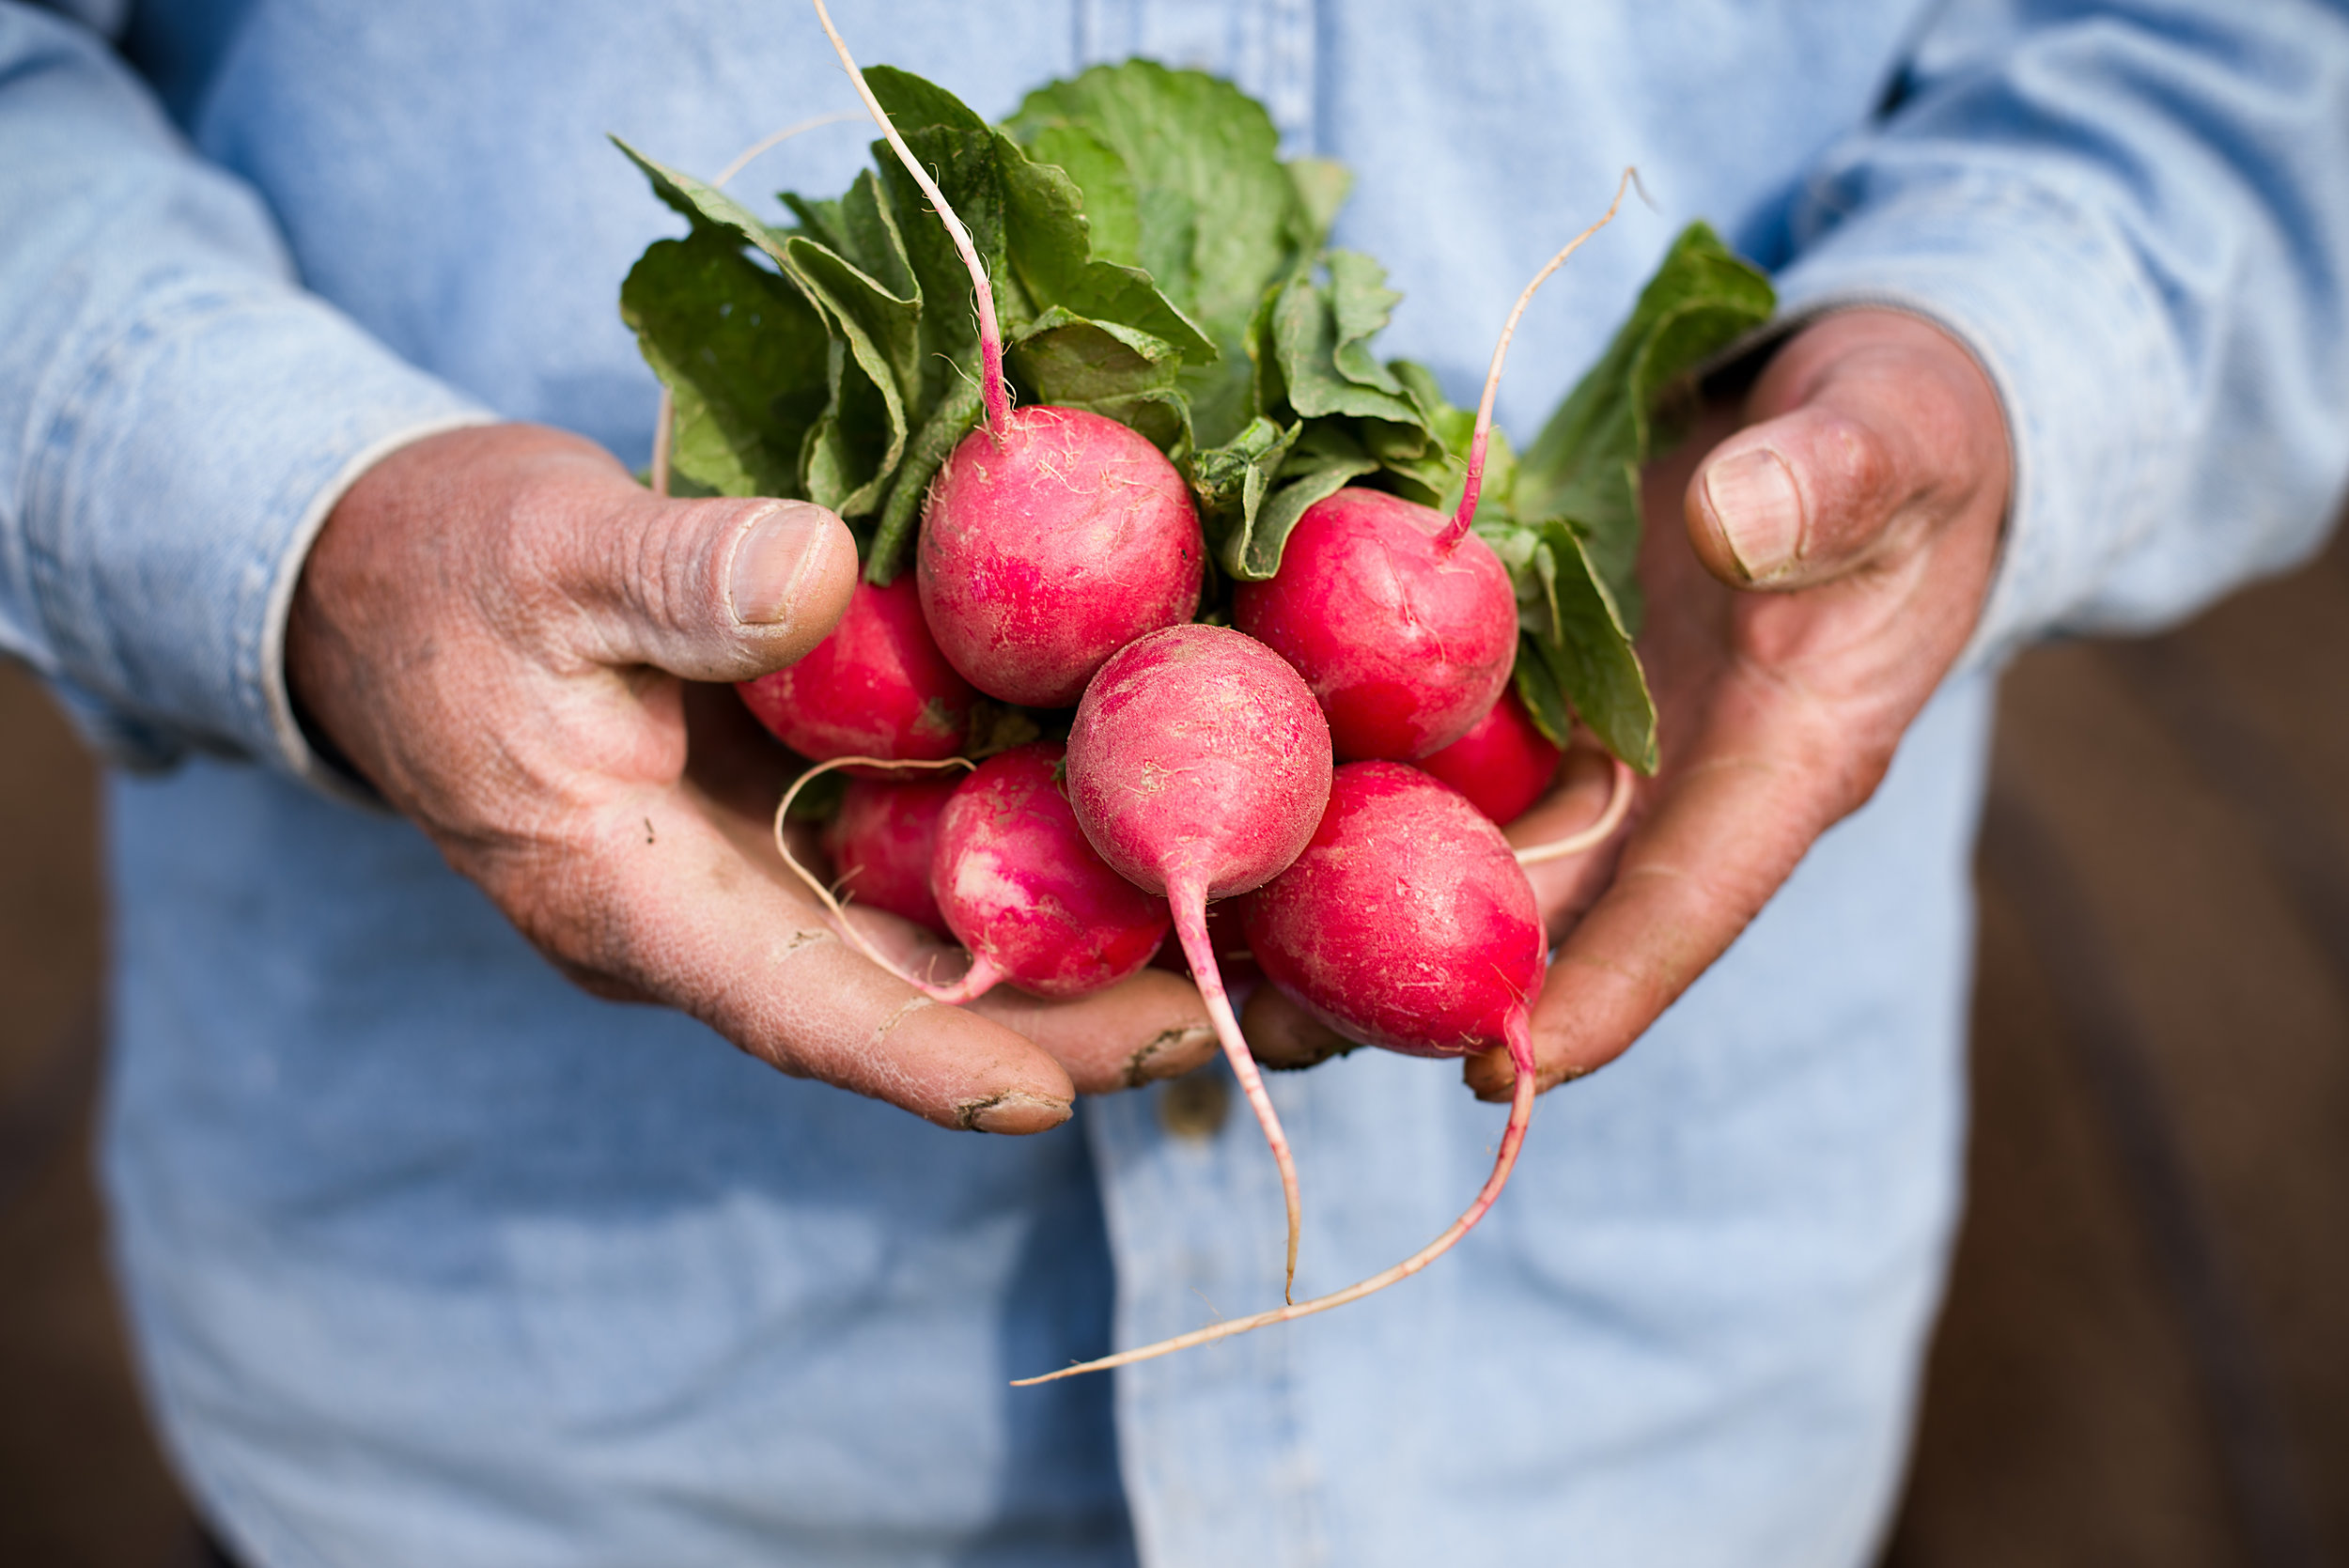 Latino man holding radishes from Re:Farm backyard garden in his hands.jpeg